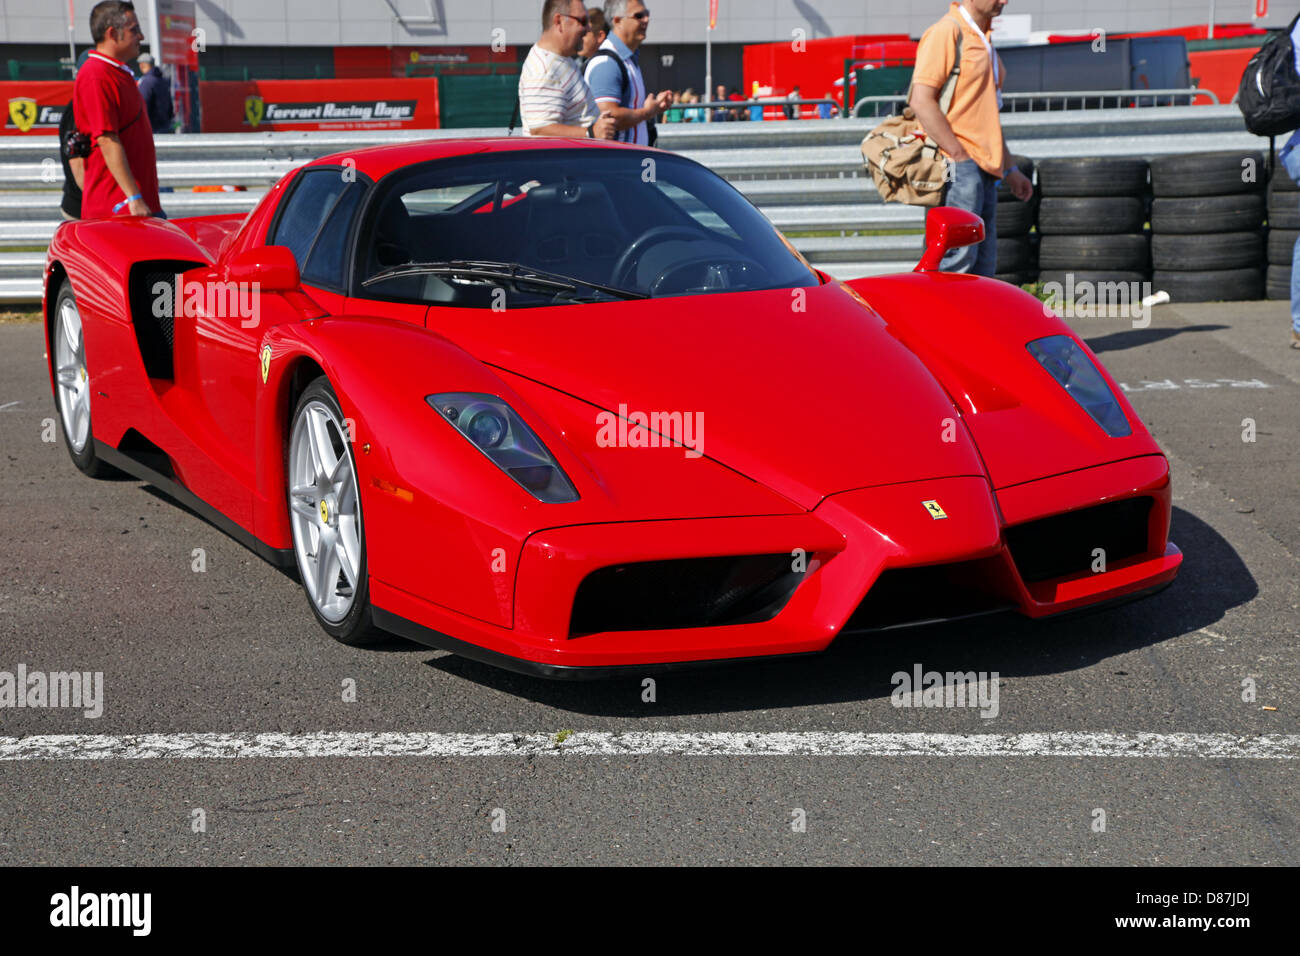 RED FERRARI ENZO CAR SILVERSTONE ENGLAND 17 September 2012 - Stock Image